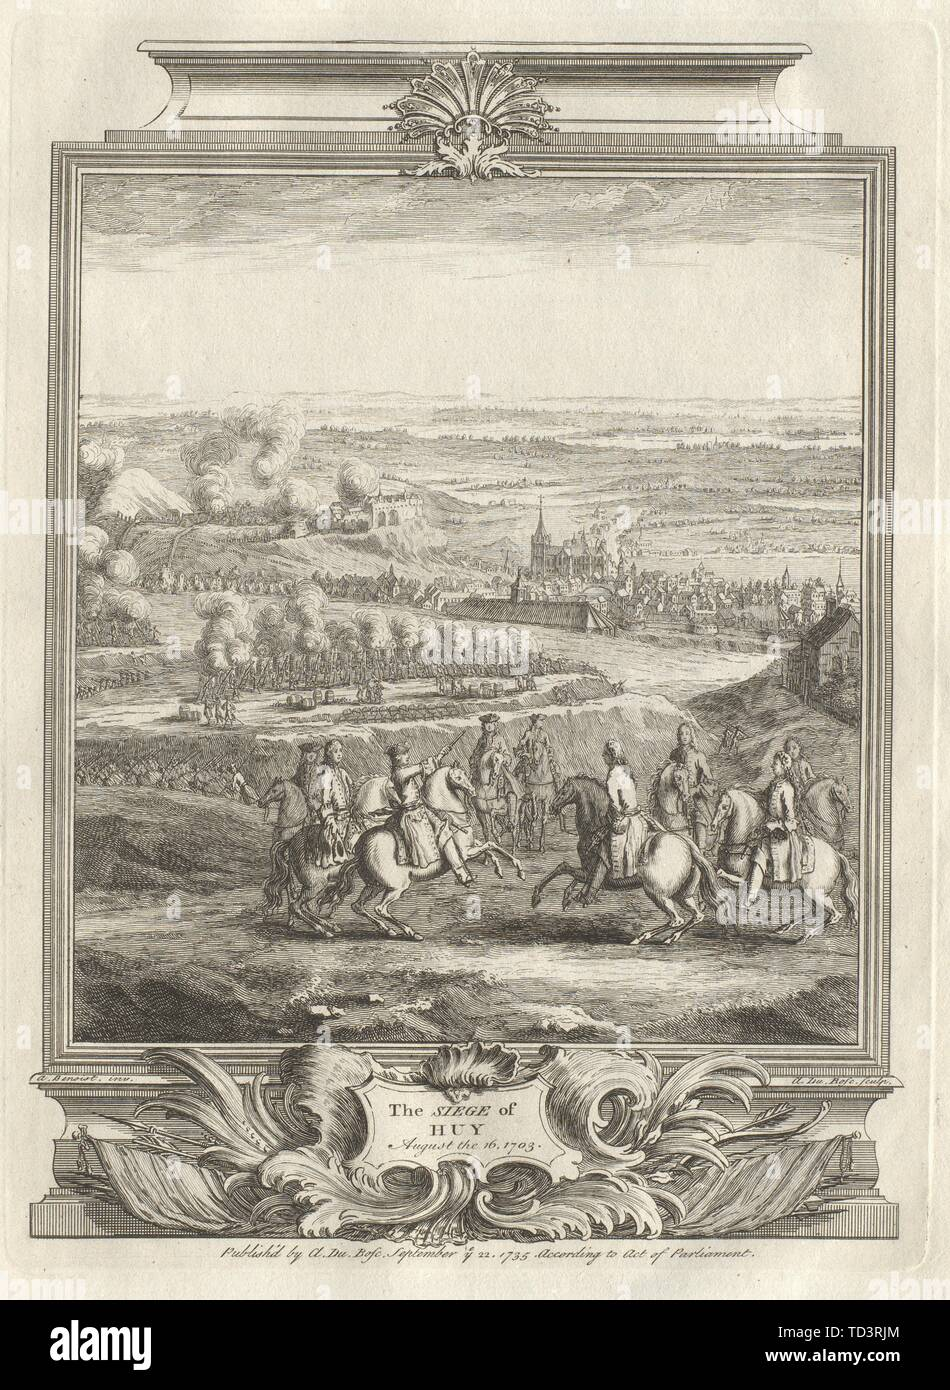 The Siege of Huy, August the 16, 1703. Belgium 1736 old antique print picture - Stock Image